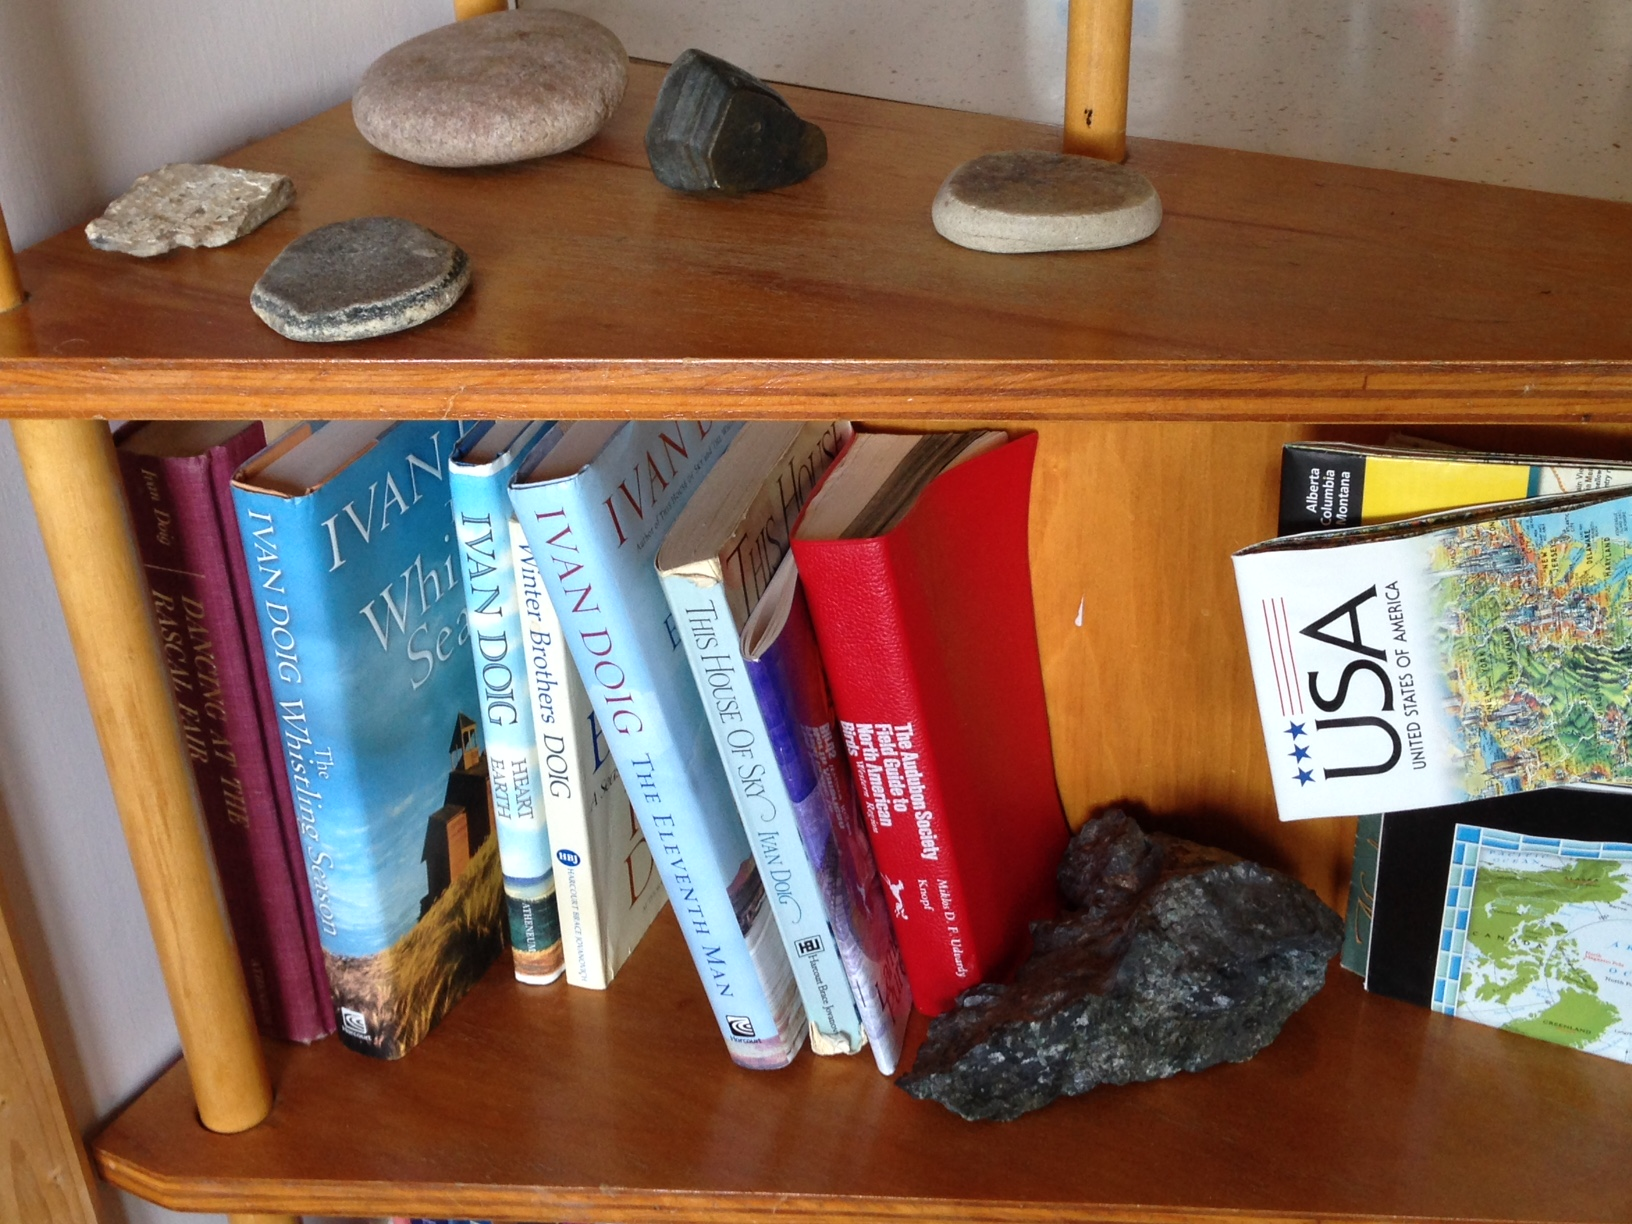 Sometimes I wonder how I ended up writing for a Montana tourism blog. Then I look at this shelf in my parents' house: random rocks, Ivan Doig, an Audubon bird guide, NPS maps...I was doomed a long time ago.